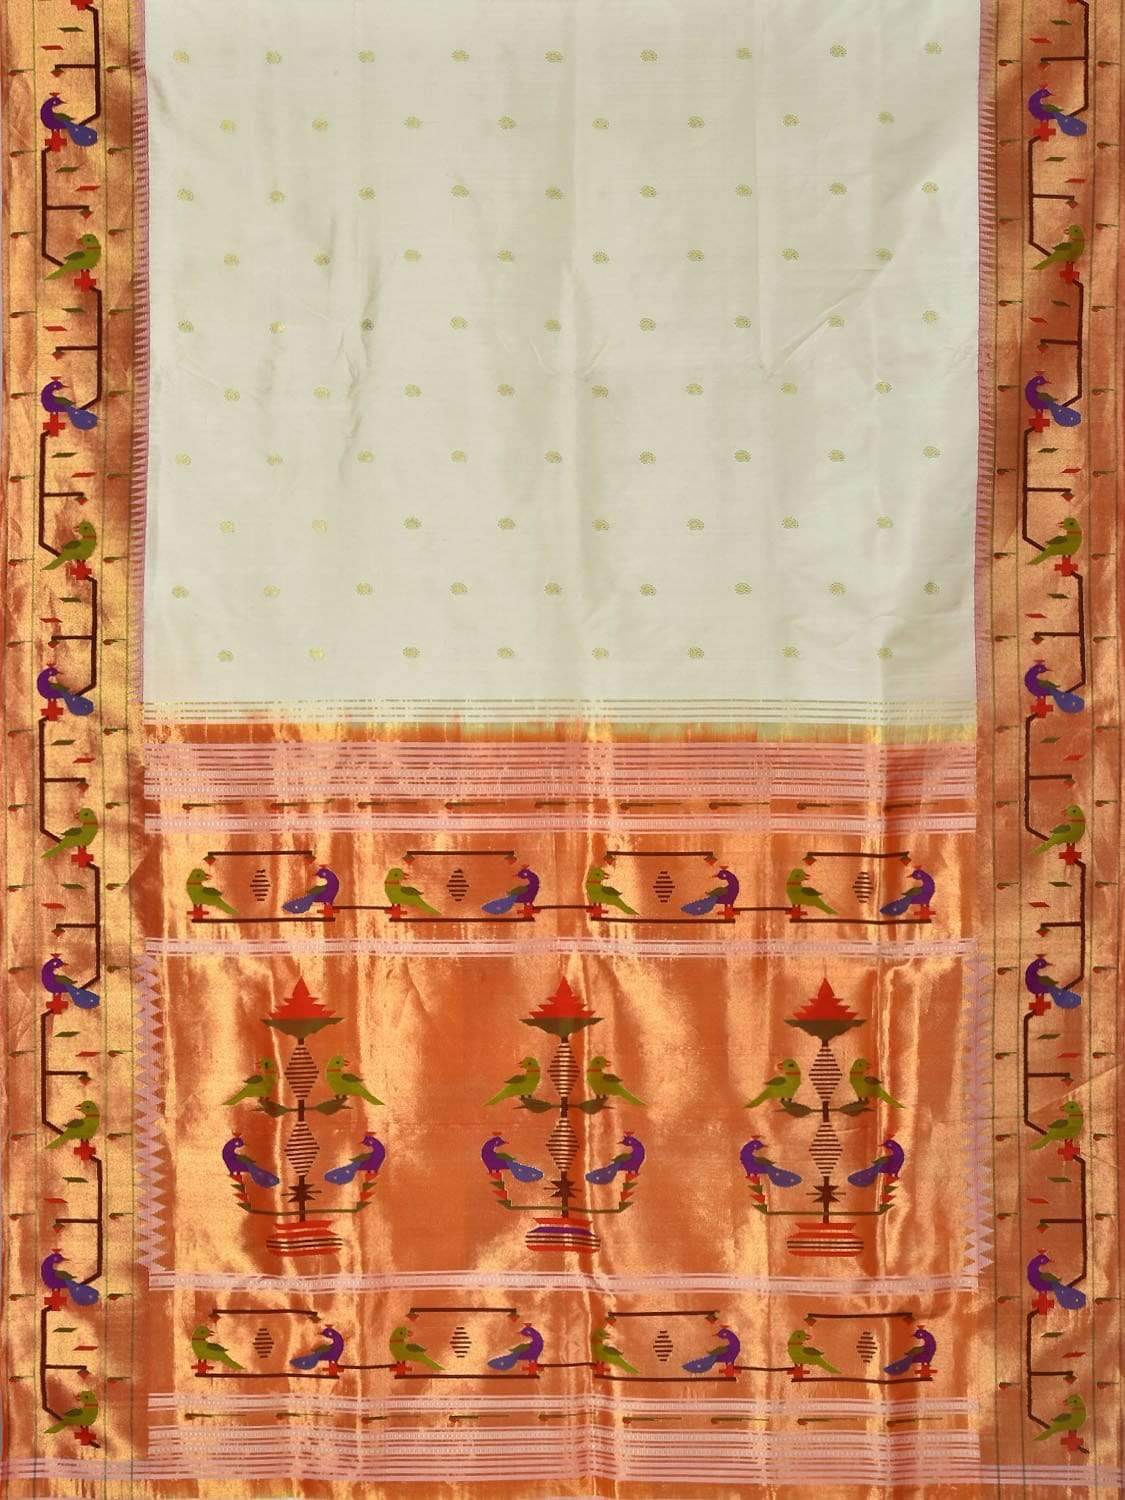 White Paithani Silk Handloom Saree with Peacock and Parrot Border Design p0320